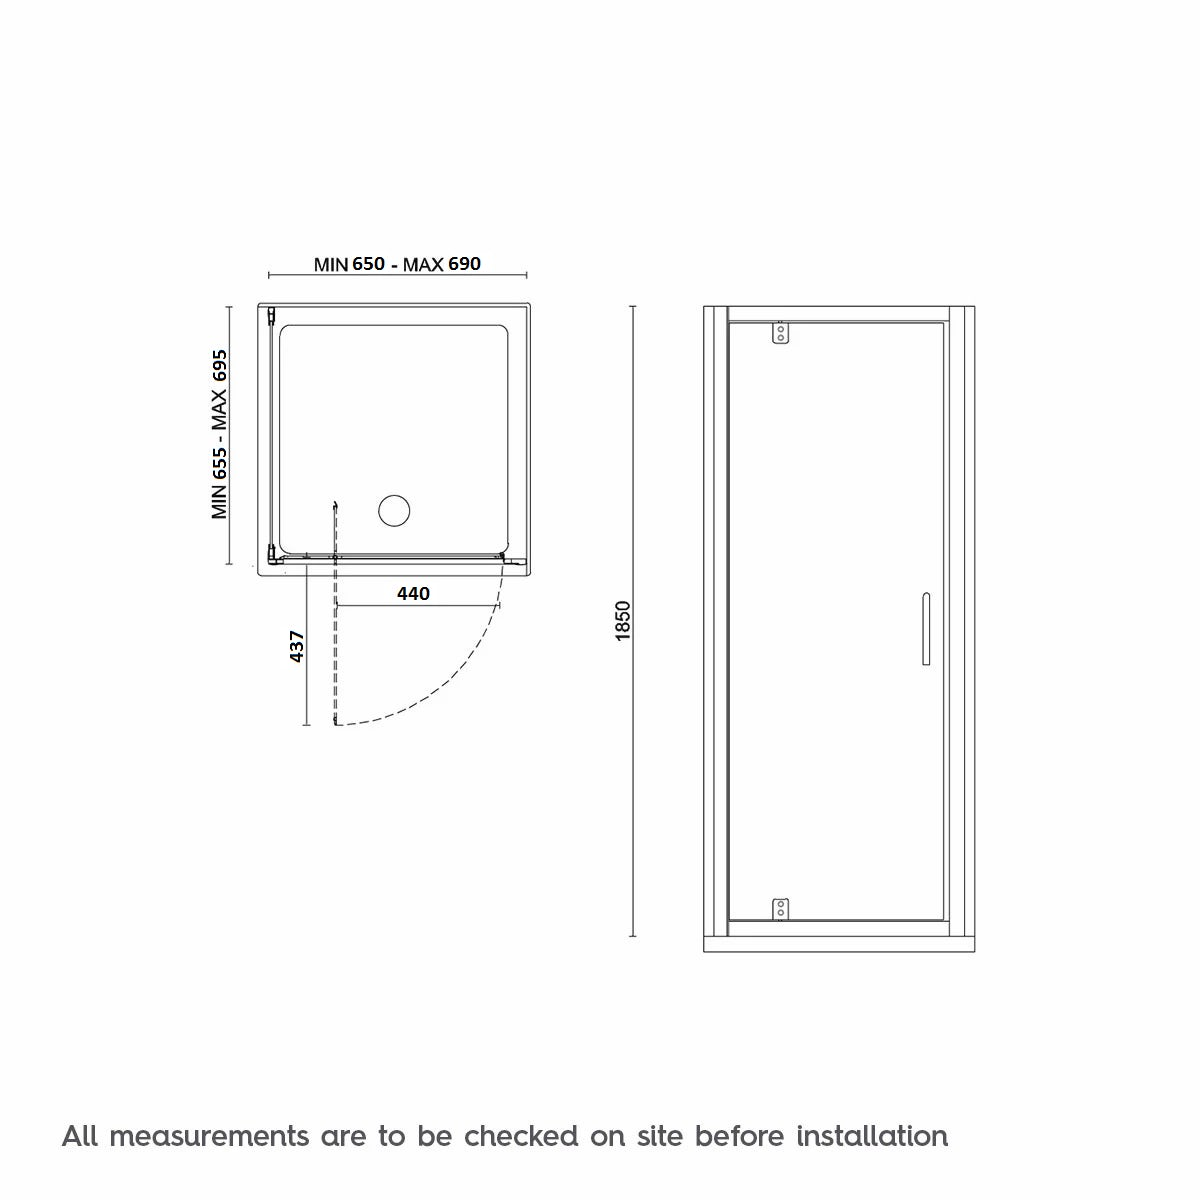 Dimensions for 700 x 700